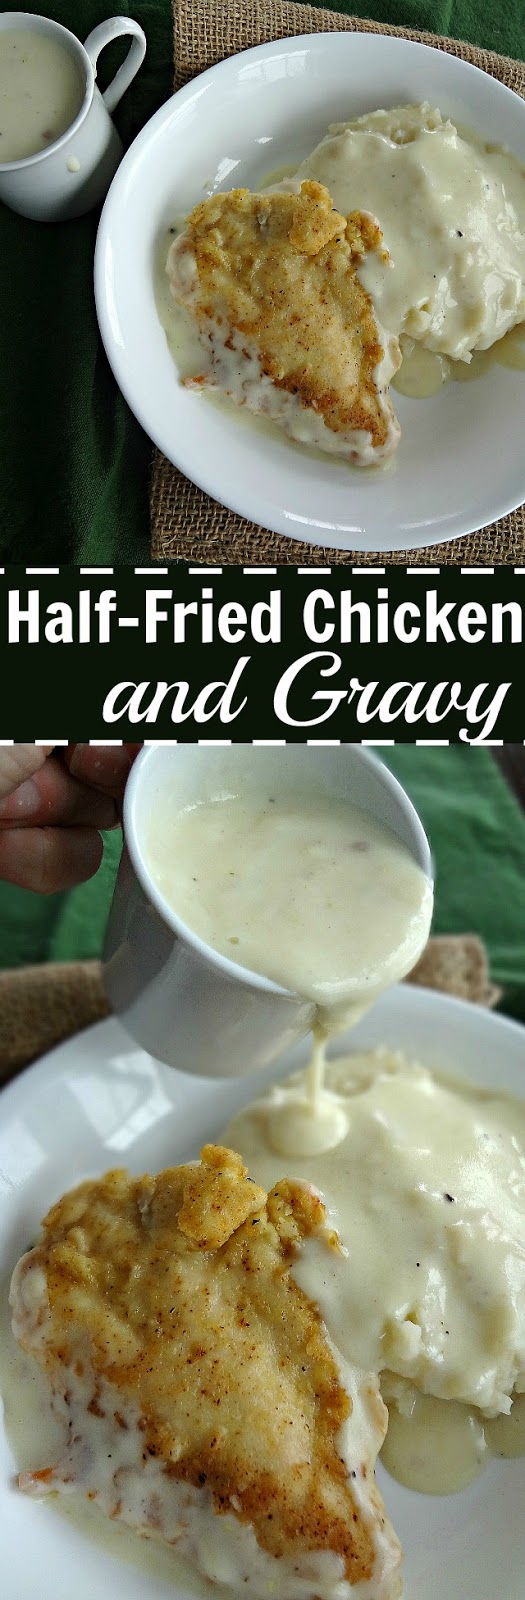 Half-Fried Chicken and Gravy